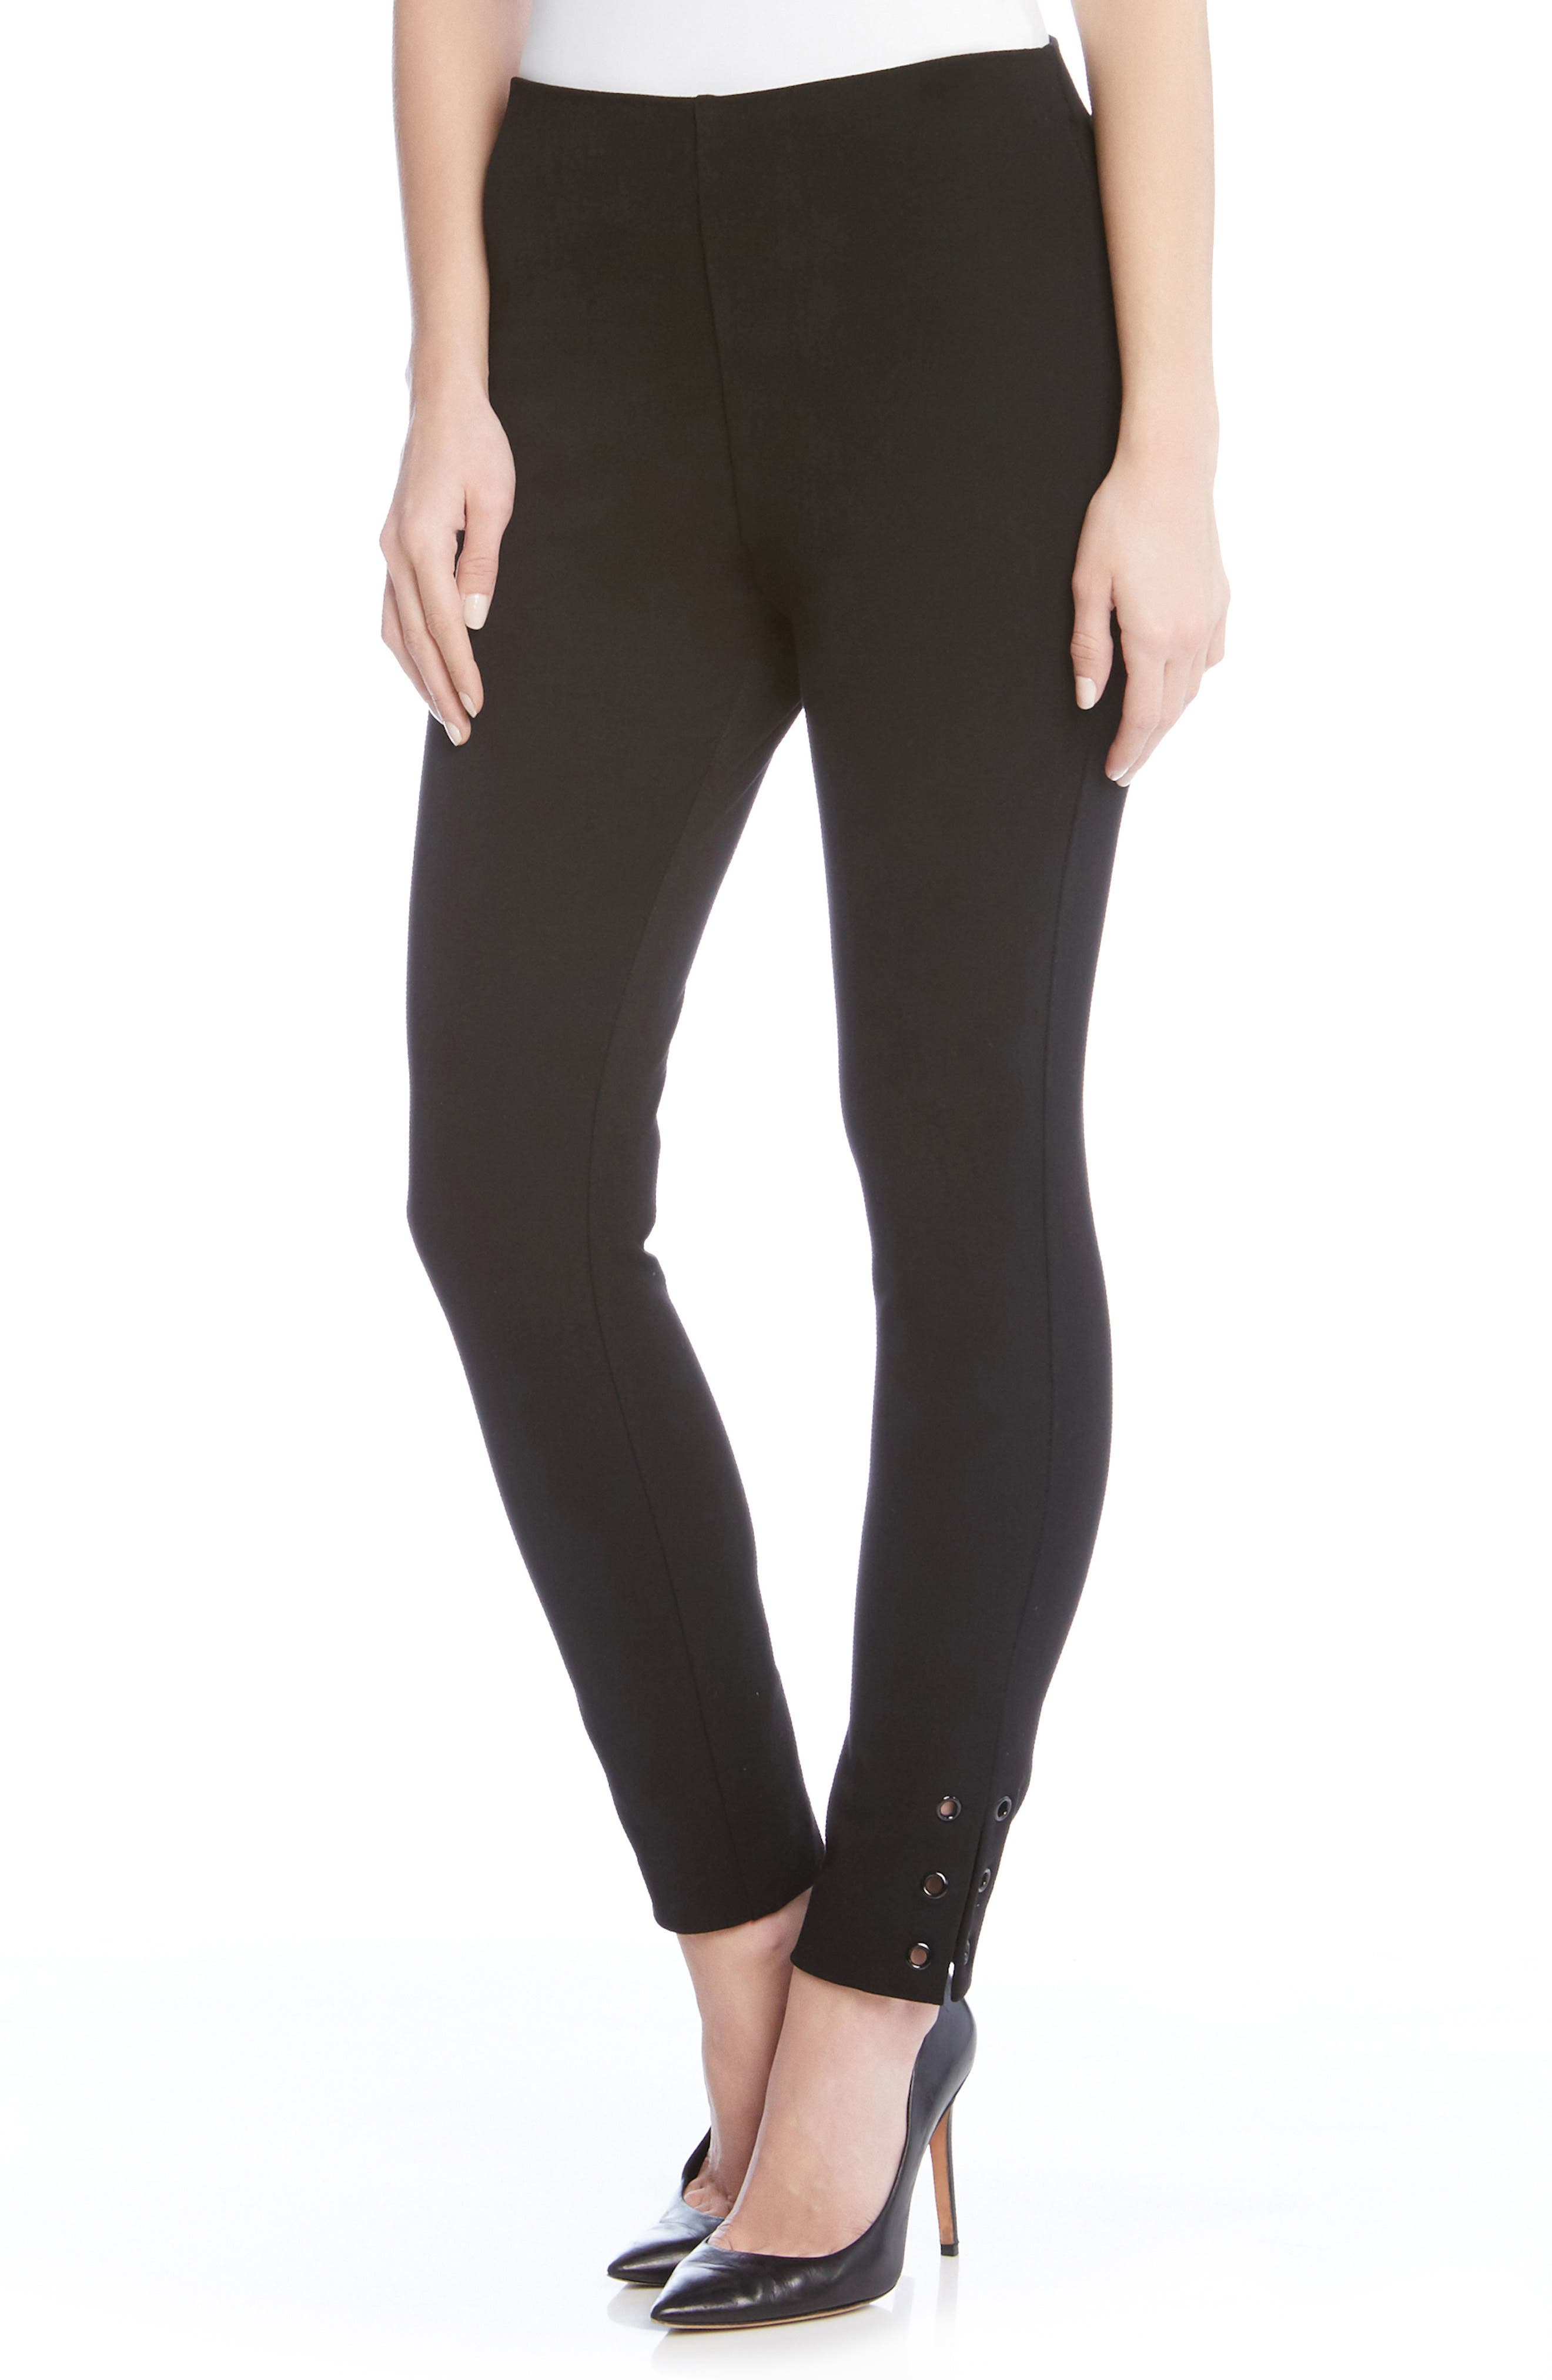 Piper Grommet Detail Skinny Pants,                         Main,                         color, Black